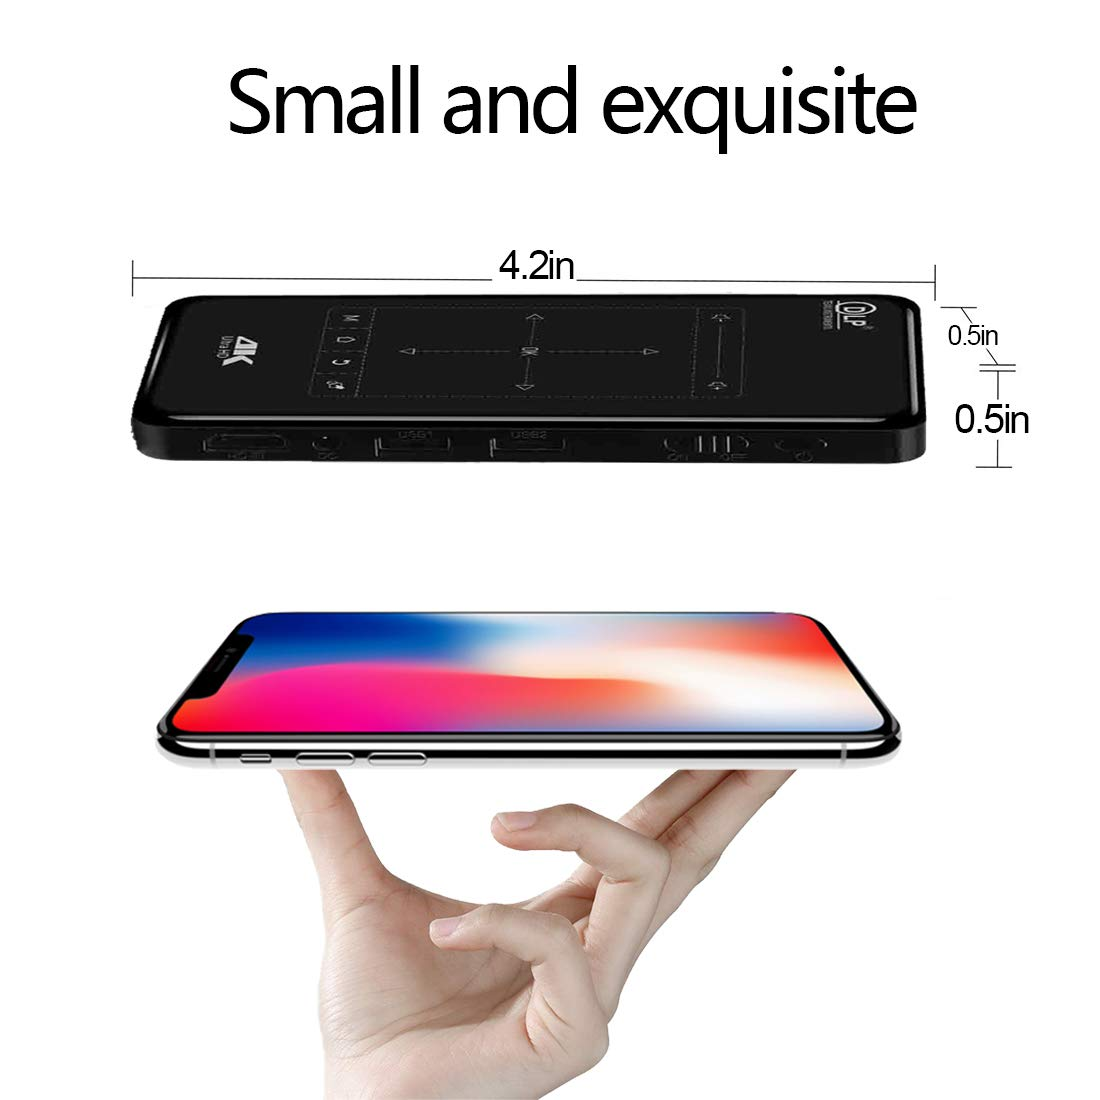 Therm 4K Mini Projector Android OS Smart Portable Wi-Fi Bluetooth Touch Pad Video Projector HDMI USB TF Card Home Office Cinema Laptop iPhone 4000mAh EU Socket